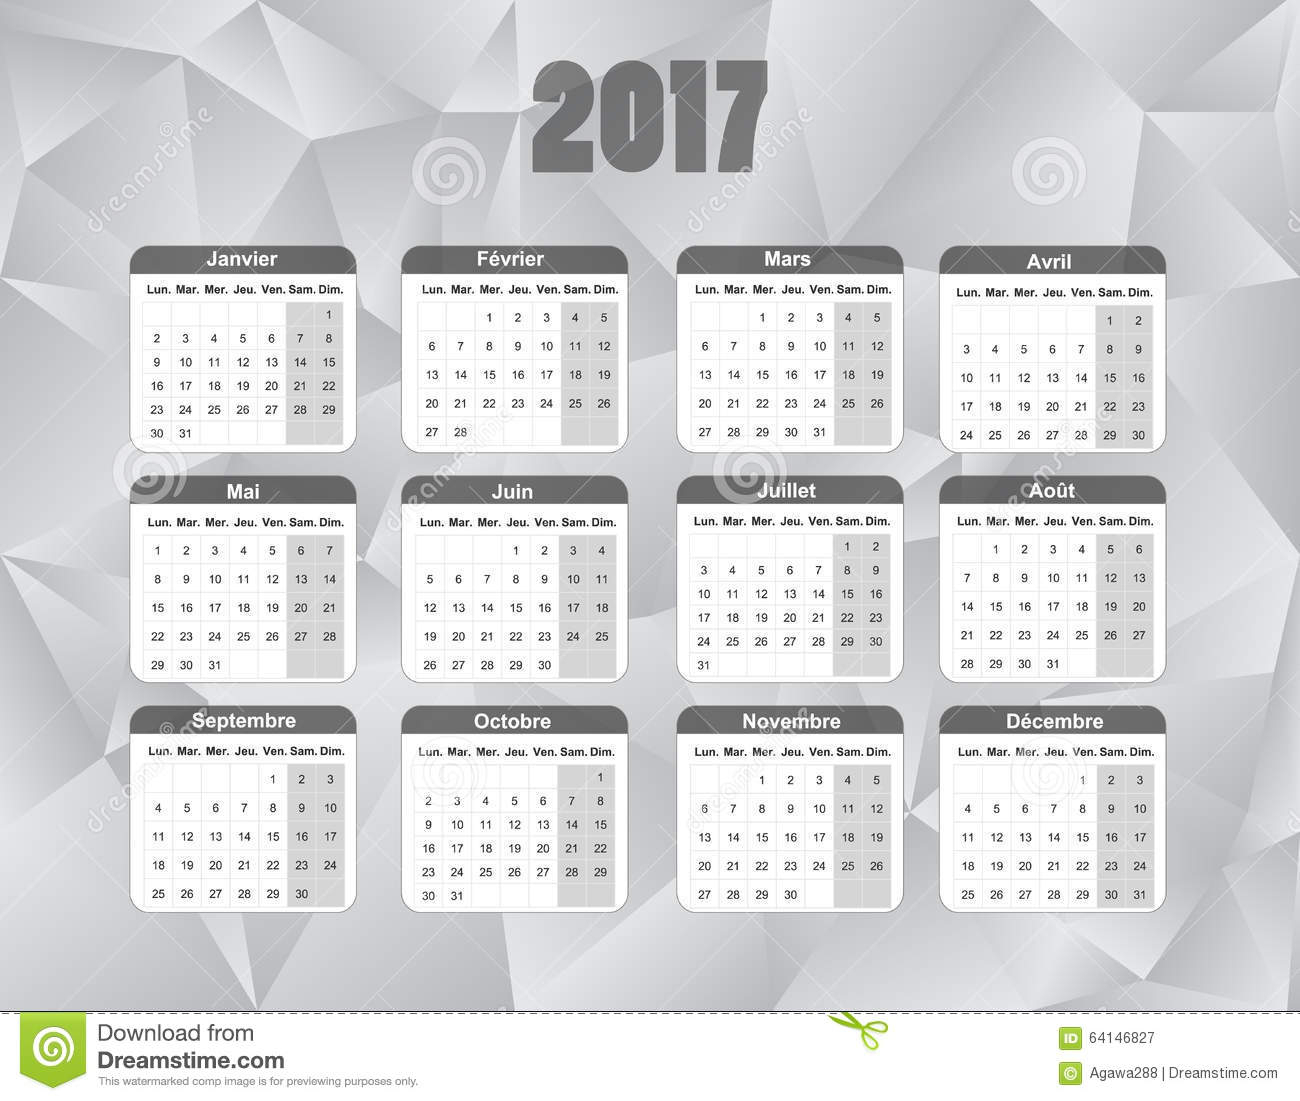 Calendar For 2017 In French Language, Sunday To Saturday